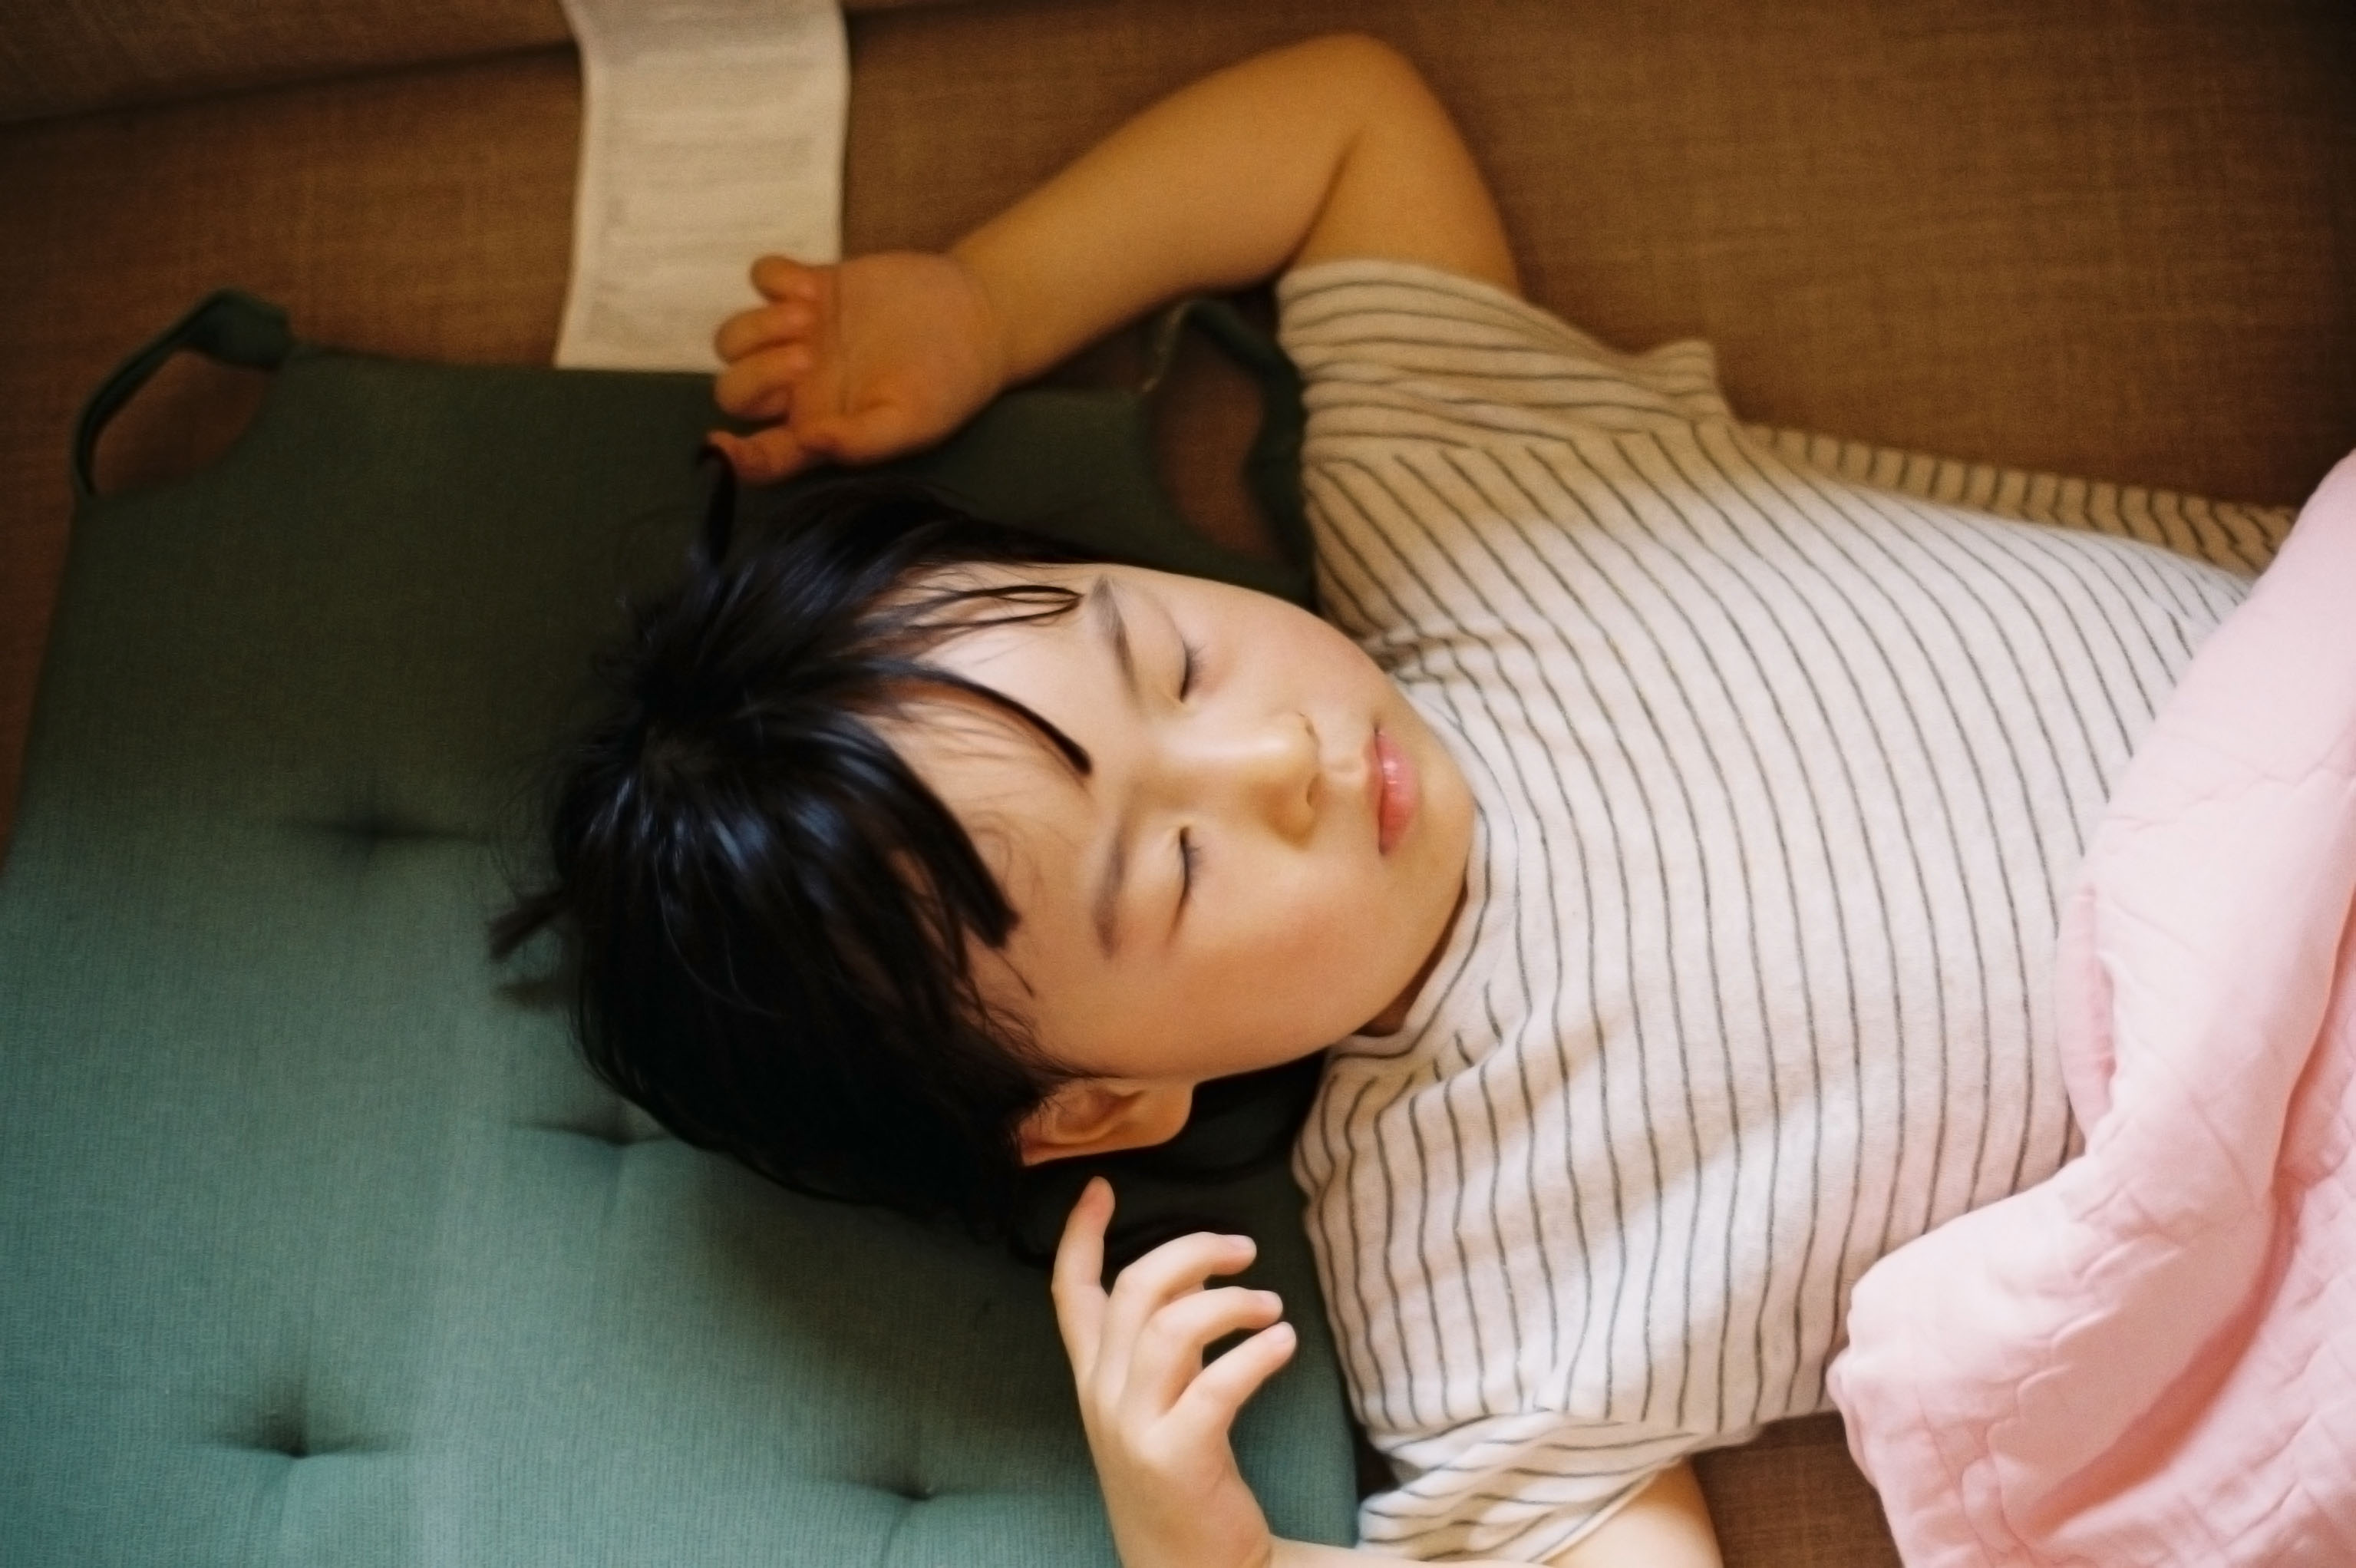 Child sleeps with his arms over his head